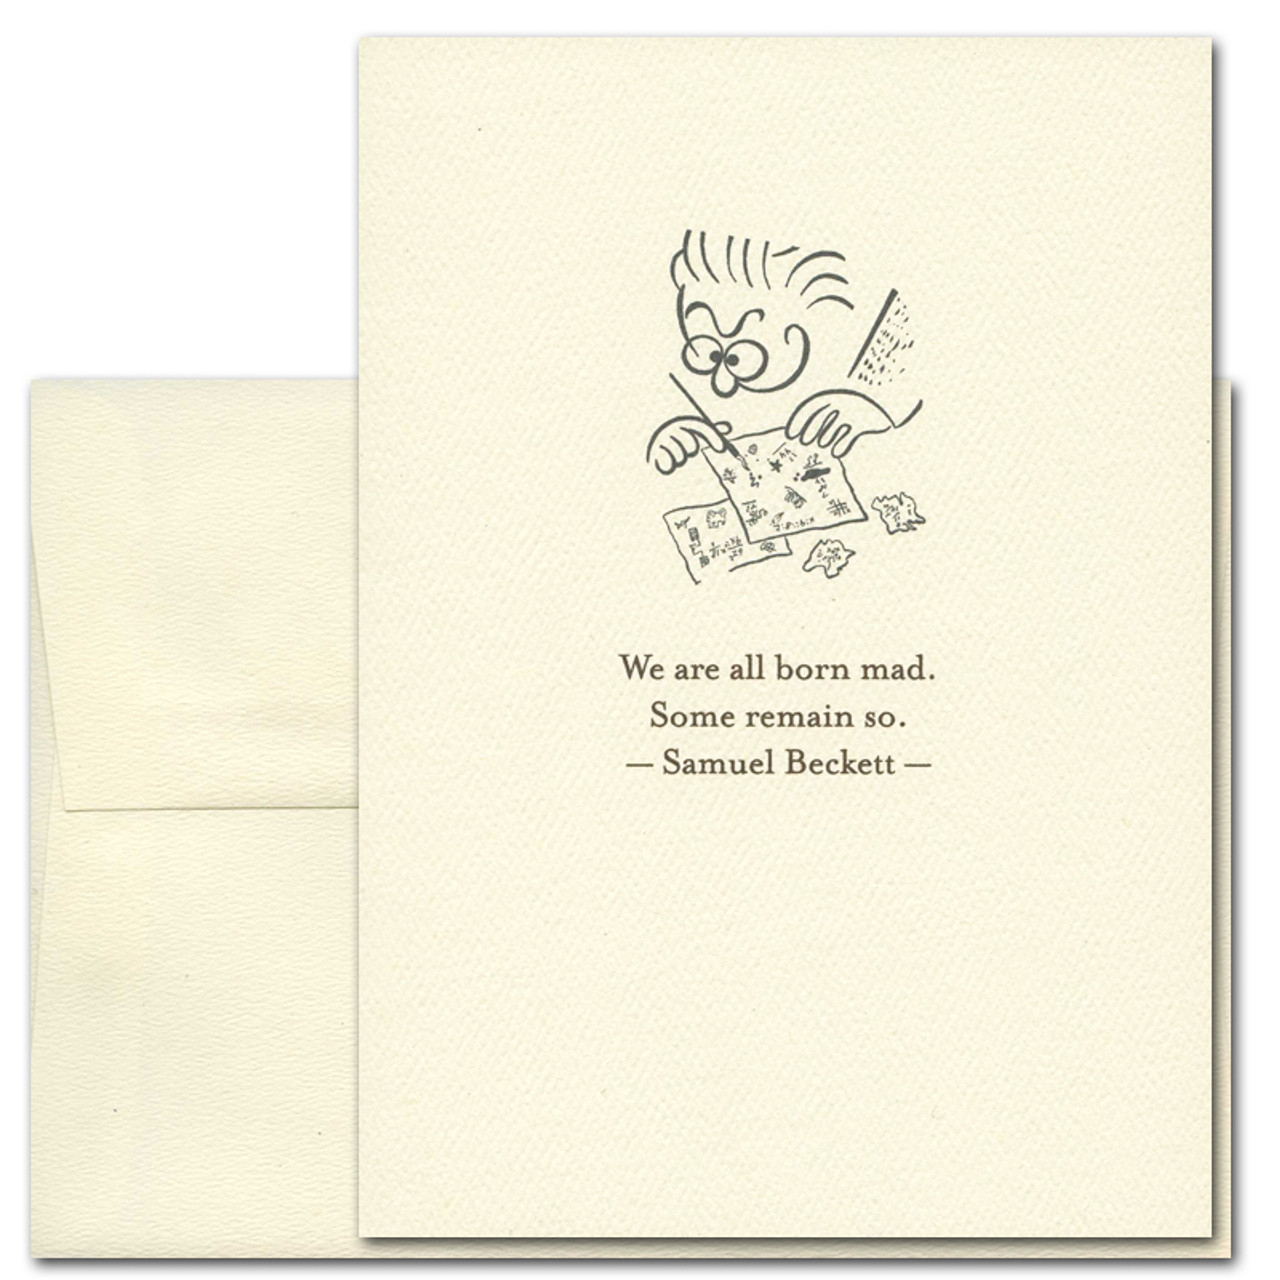 """Quotation Card """"Born Mad: Beckett"""" Cover shows a vintage style drawing of a funny faced man making doodles with a quote by Samuel Beckett reading: """"We are all born mad. Some remain so."""""""